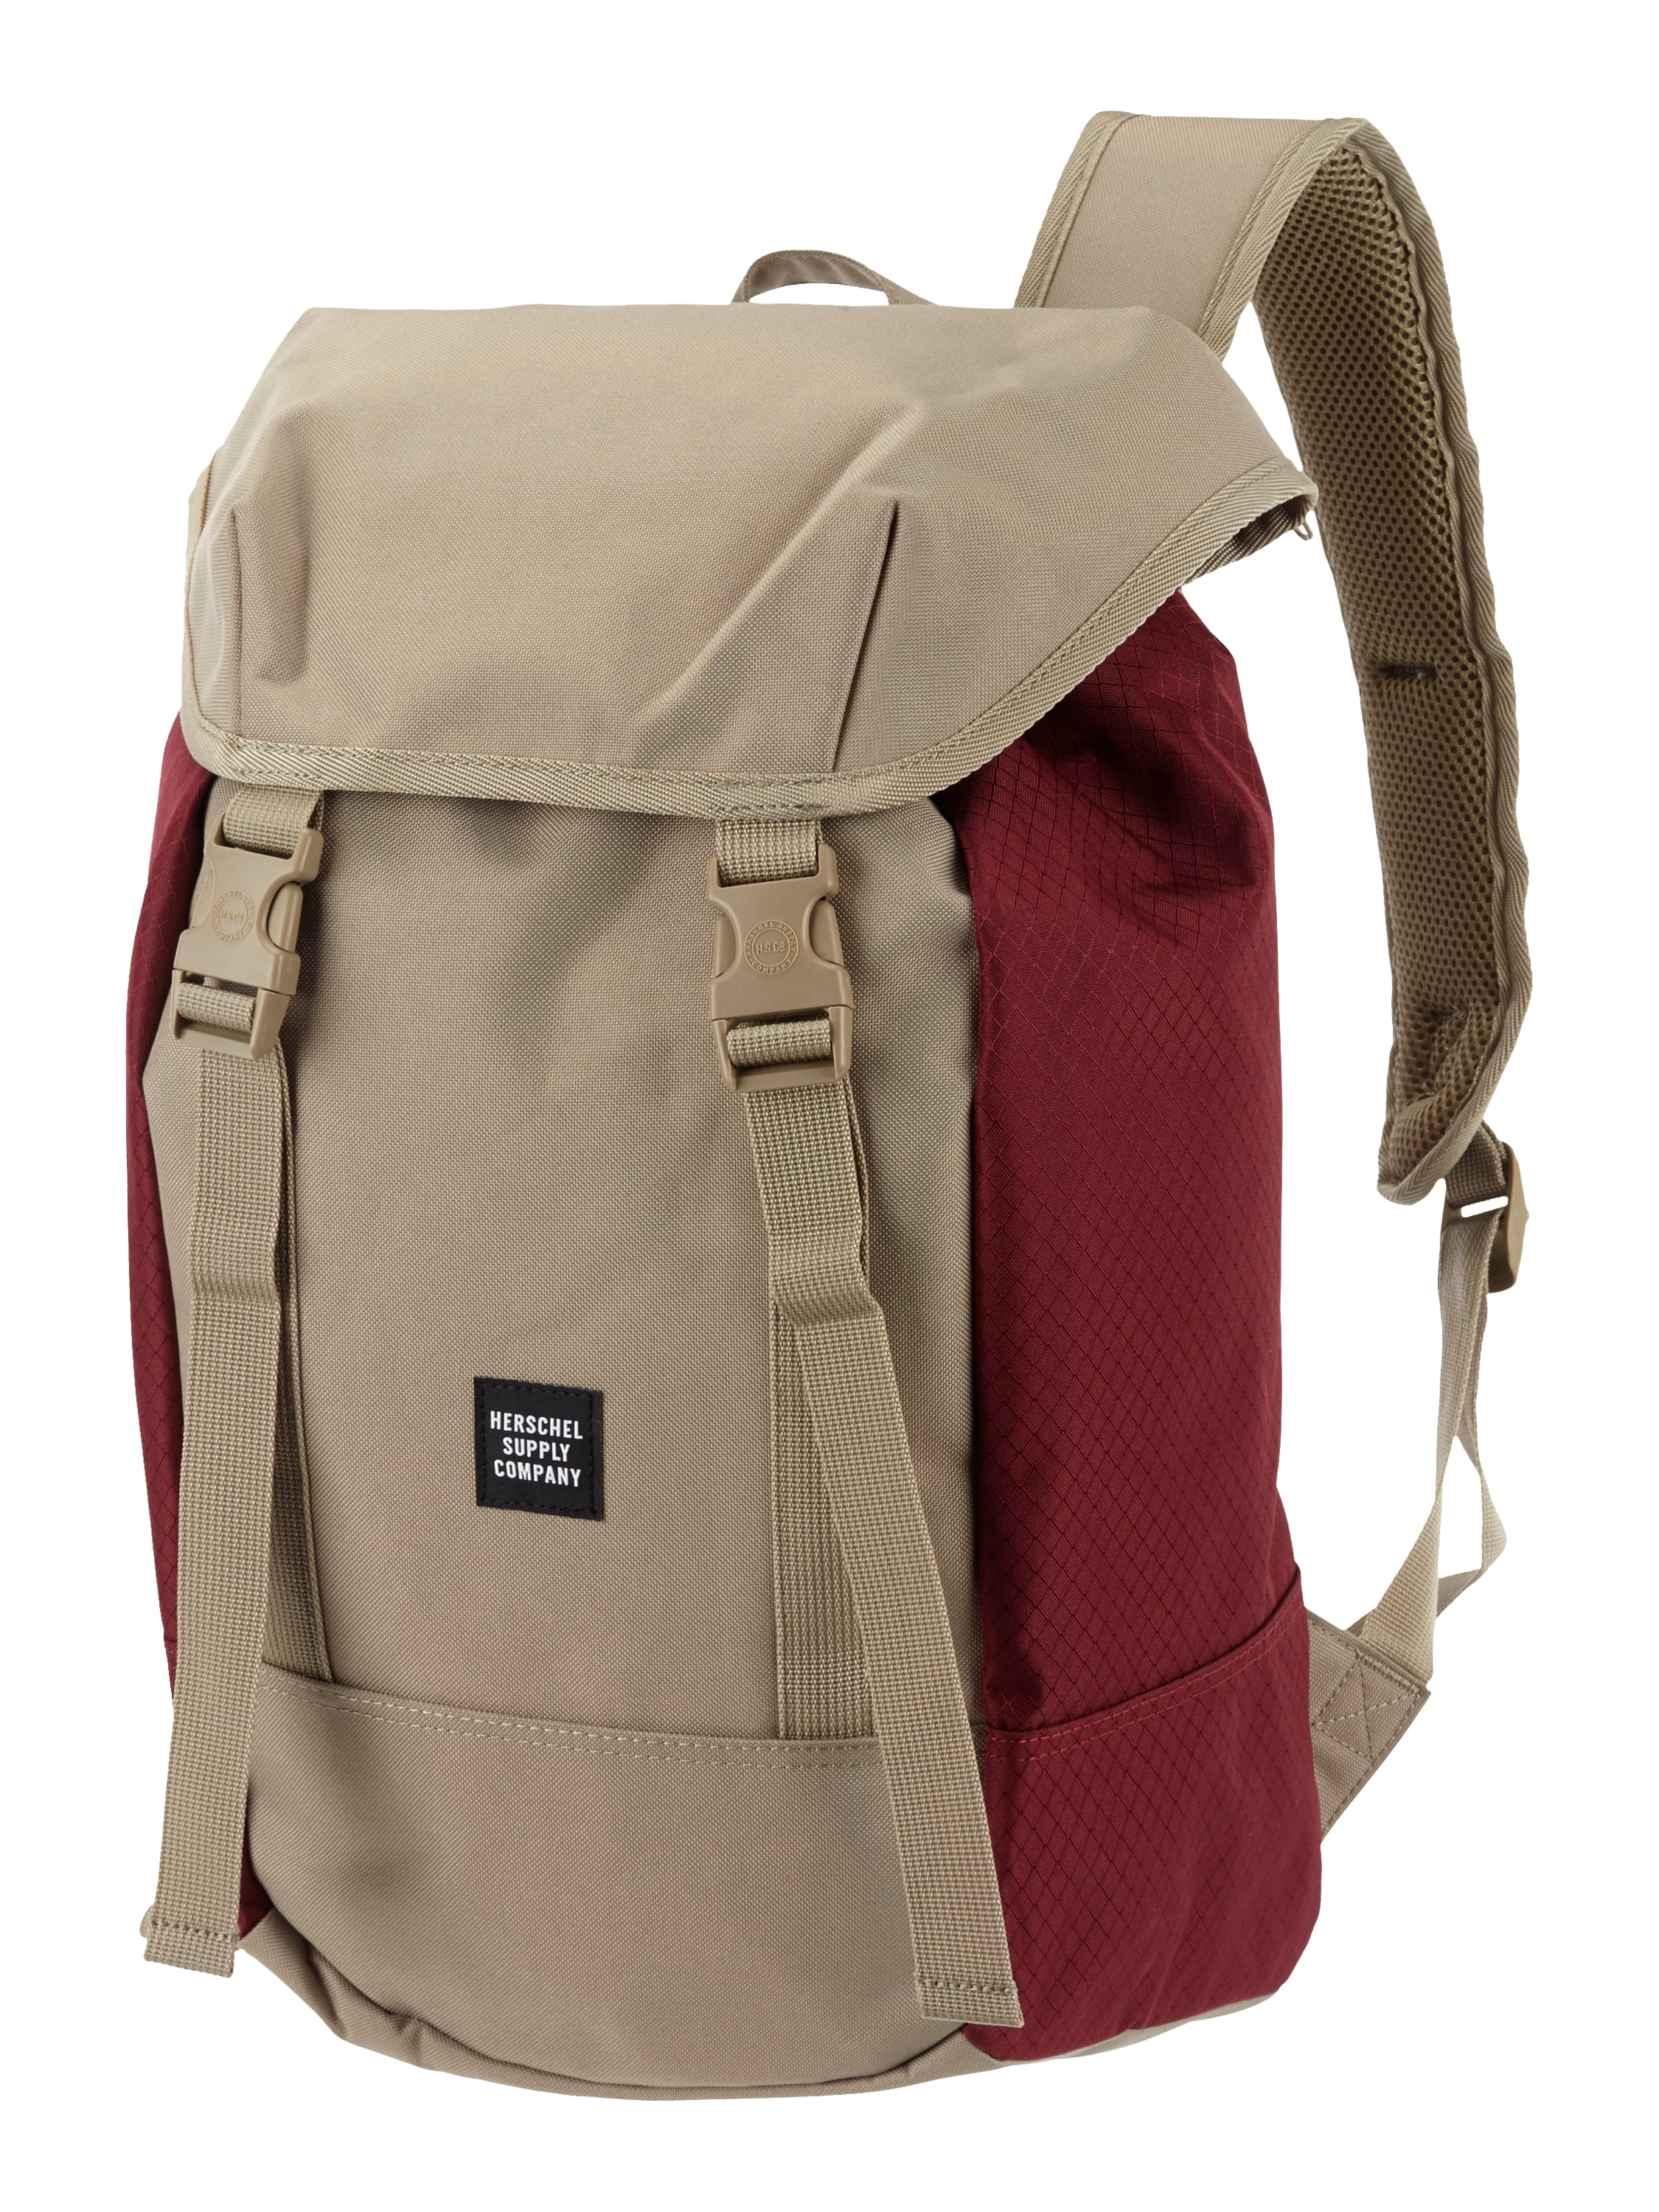 herschel rucksack mit laptopfach in rot online kaufen 9600193 p c online shop. Black Bedroom Furniture Sets. Home Design Ideas